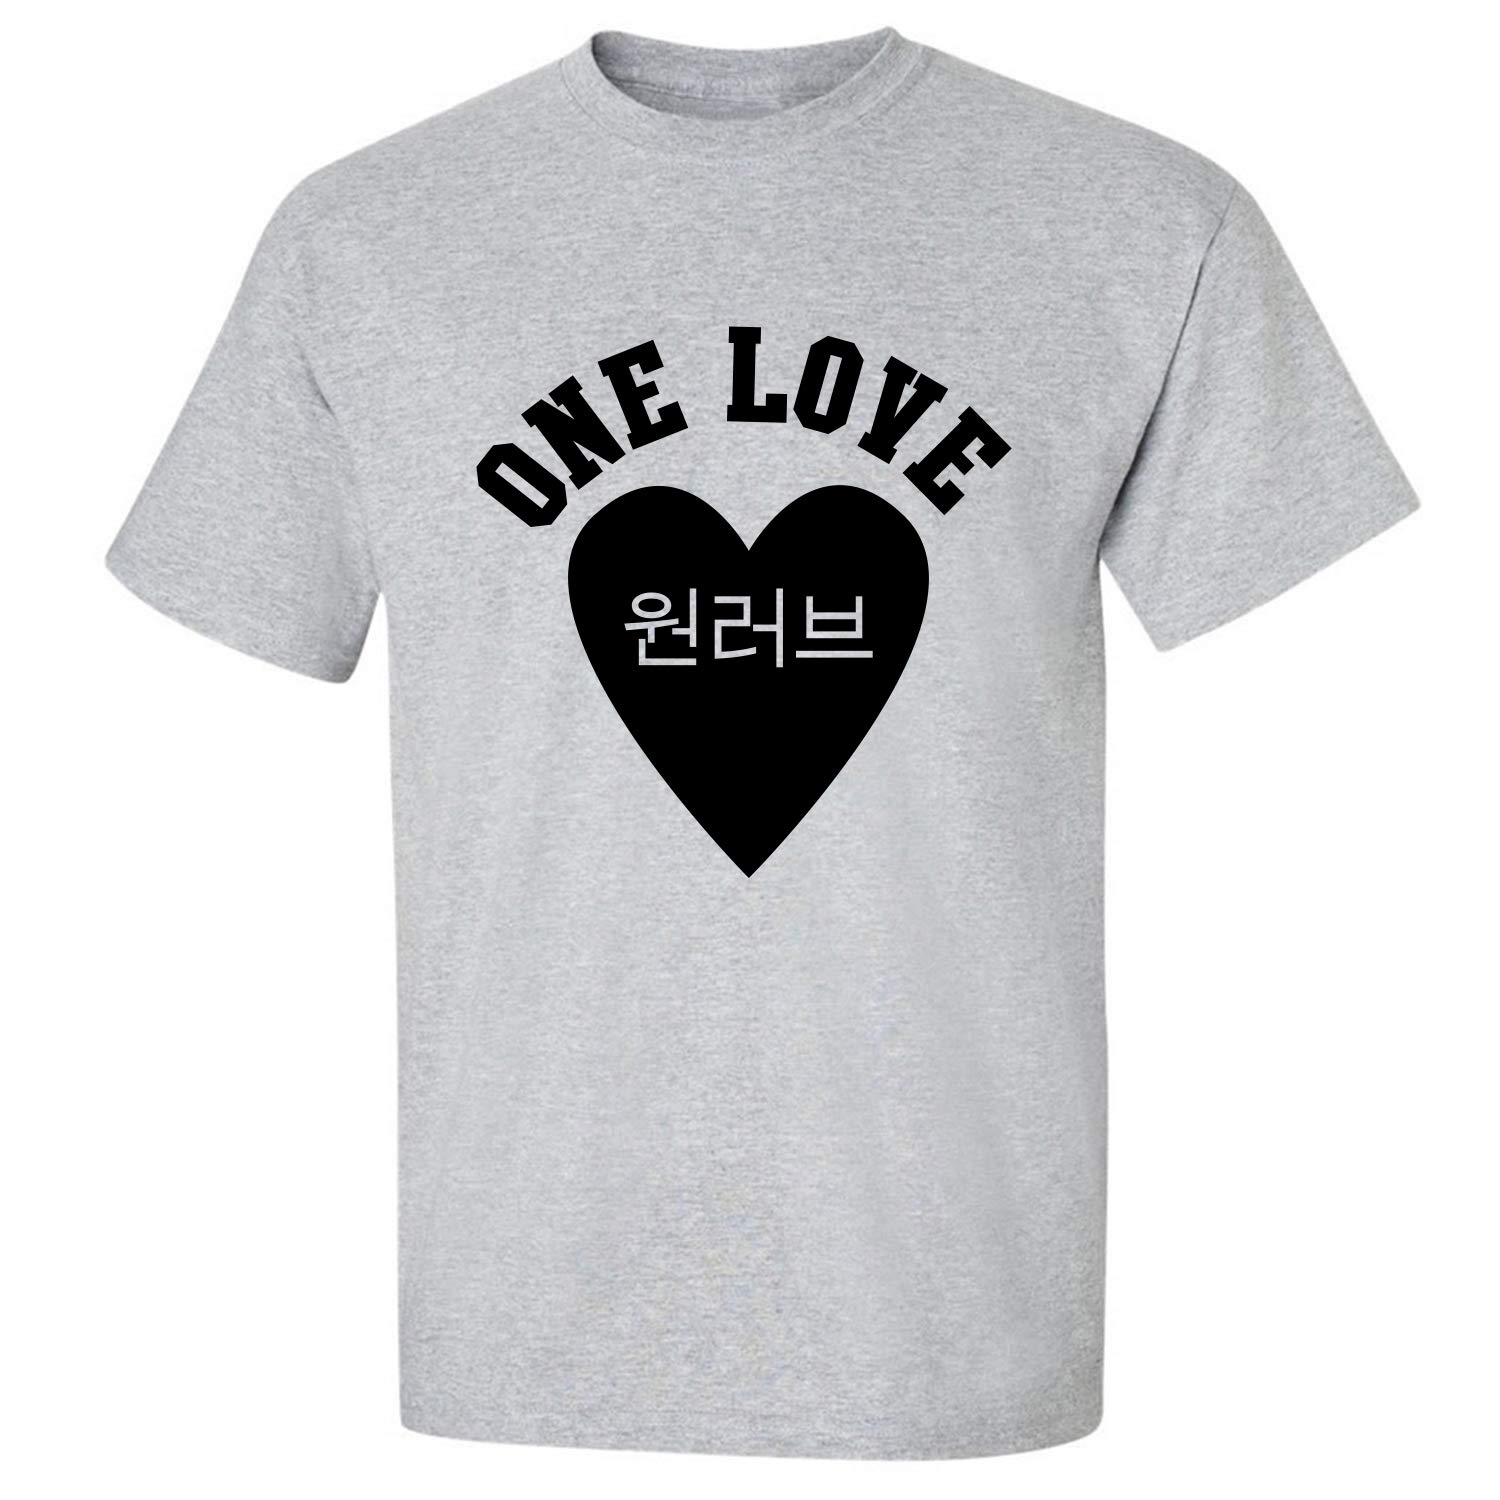 Korean One Love Adult T-Shirt in Sport Grey - XXX-Large